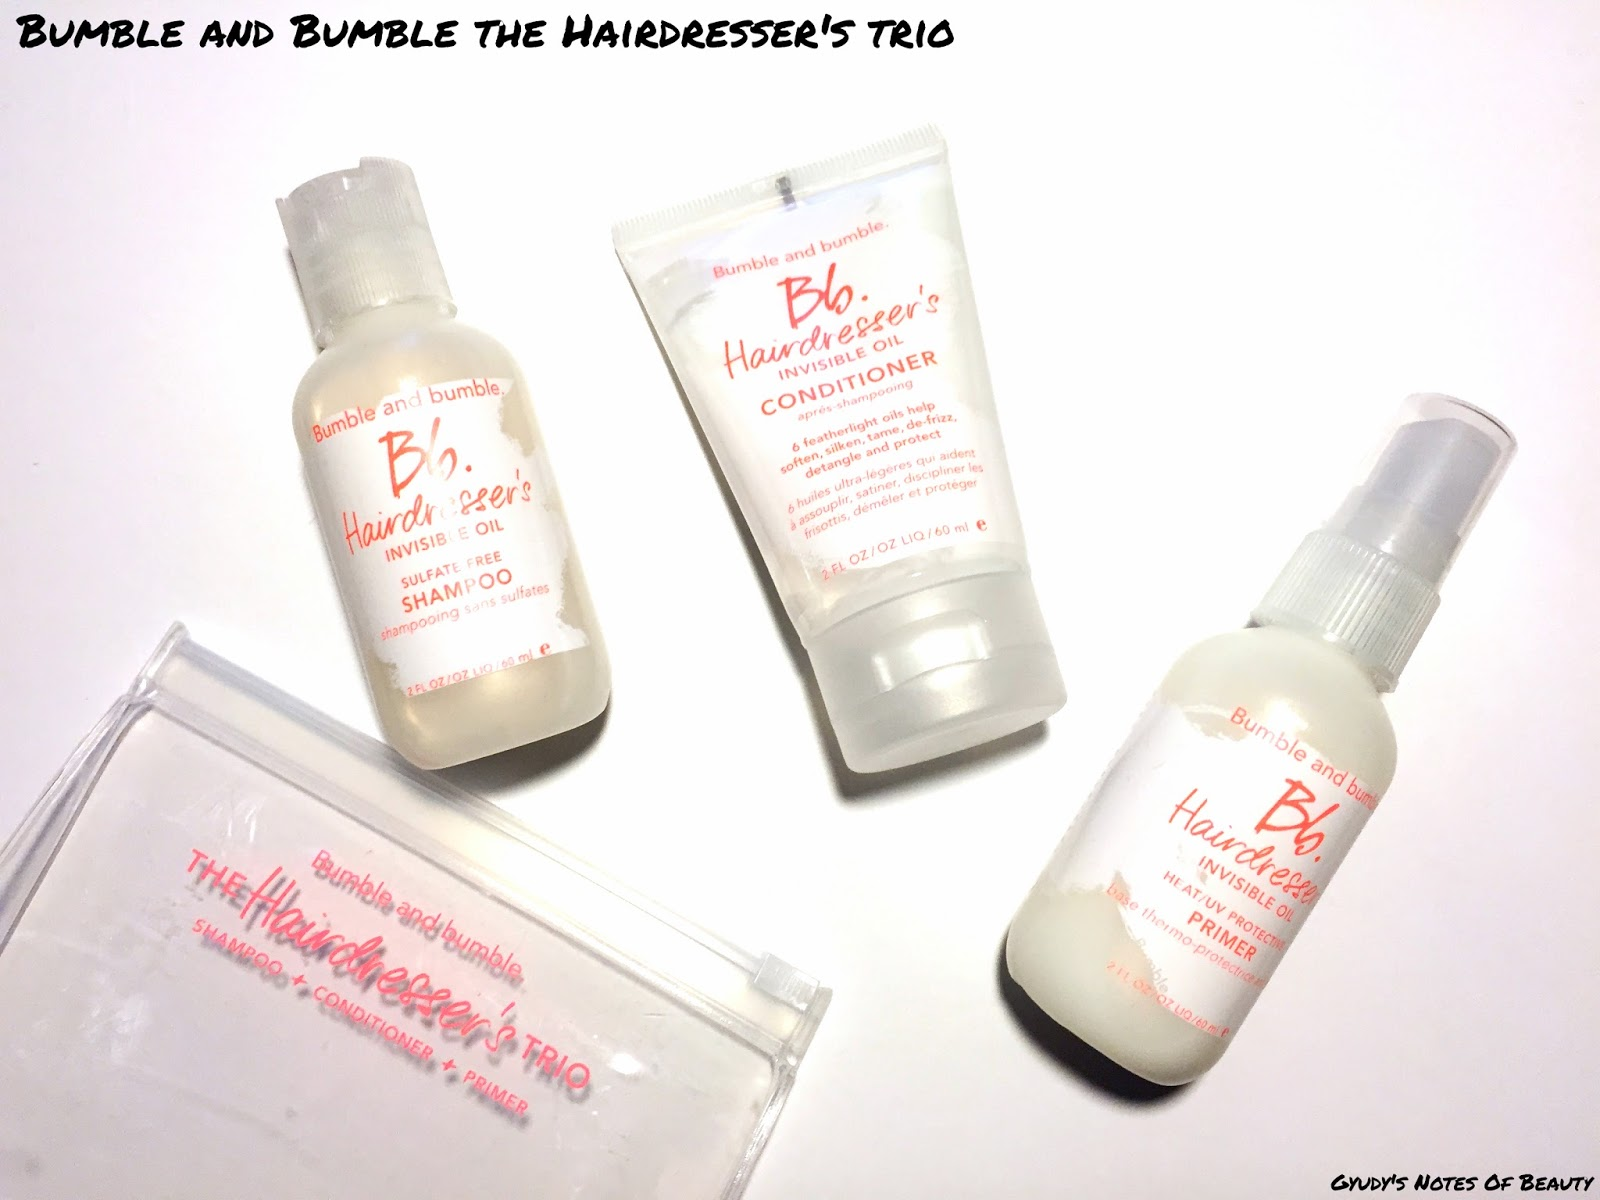 Bumble and bumble hairdresser's trio shampoo conditioner primer